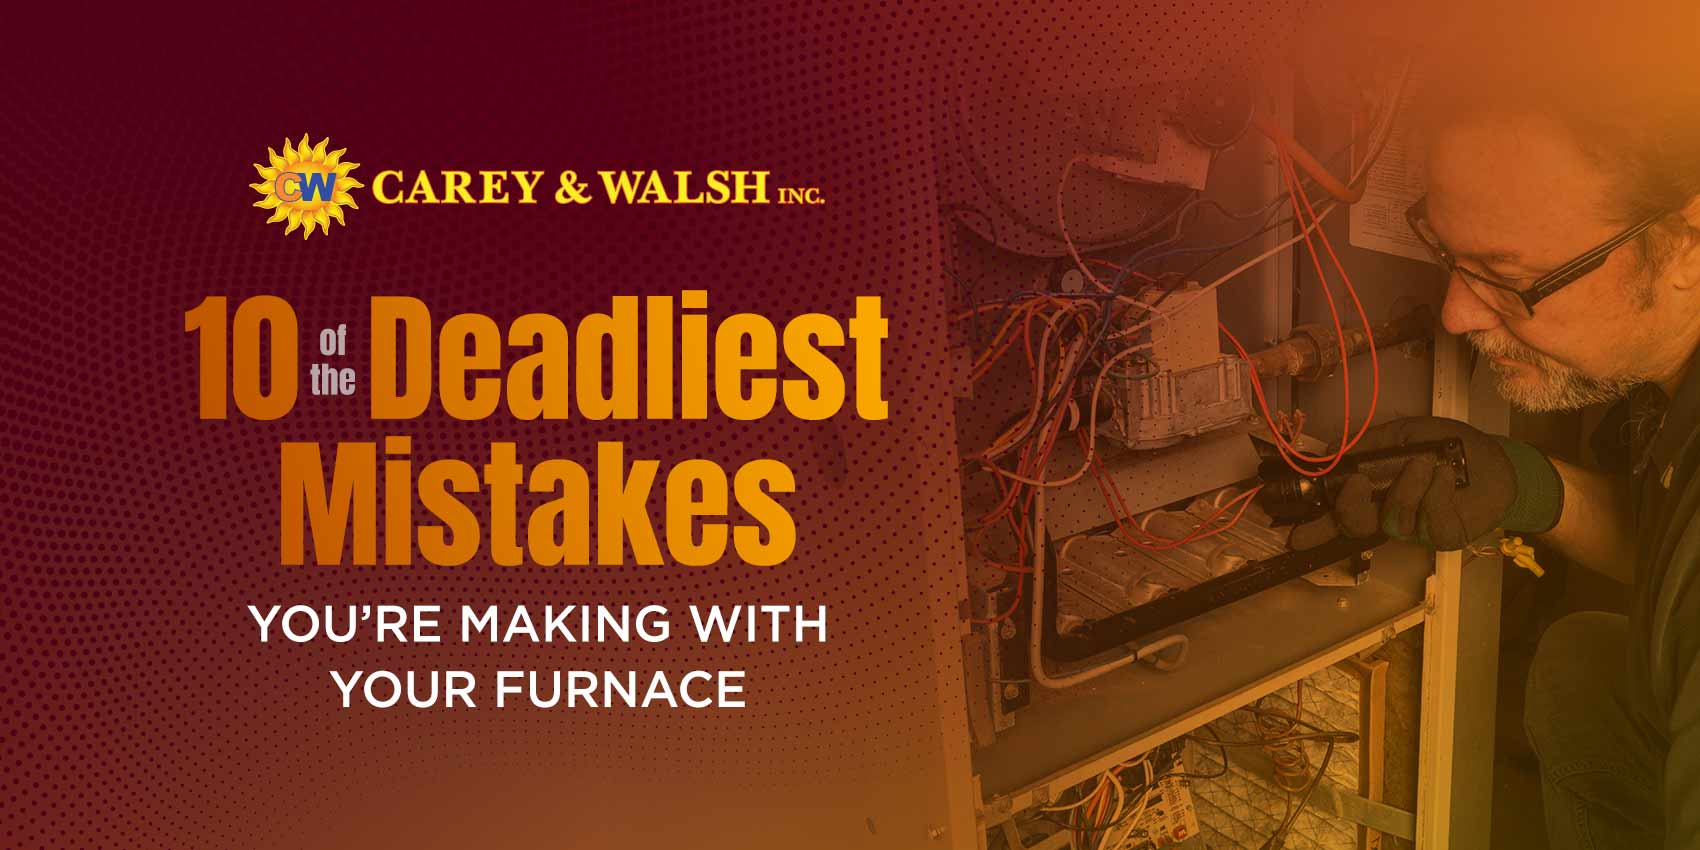 10 Of The Deadliest Mistakes You're Making With Your Furnace